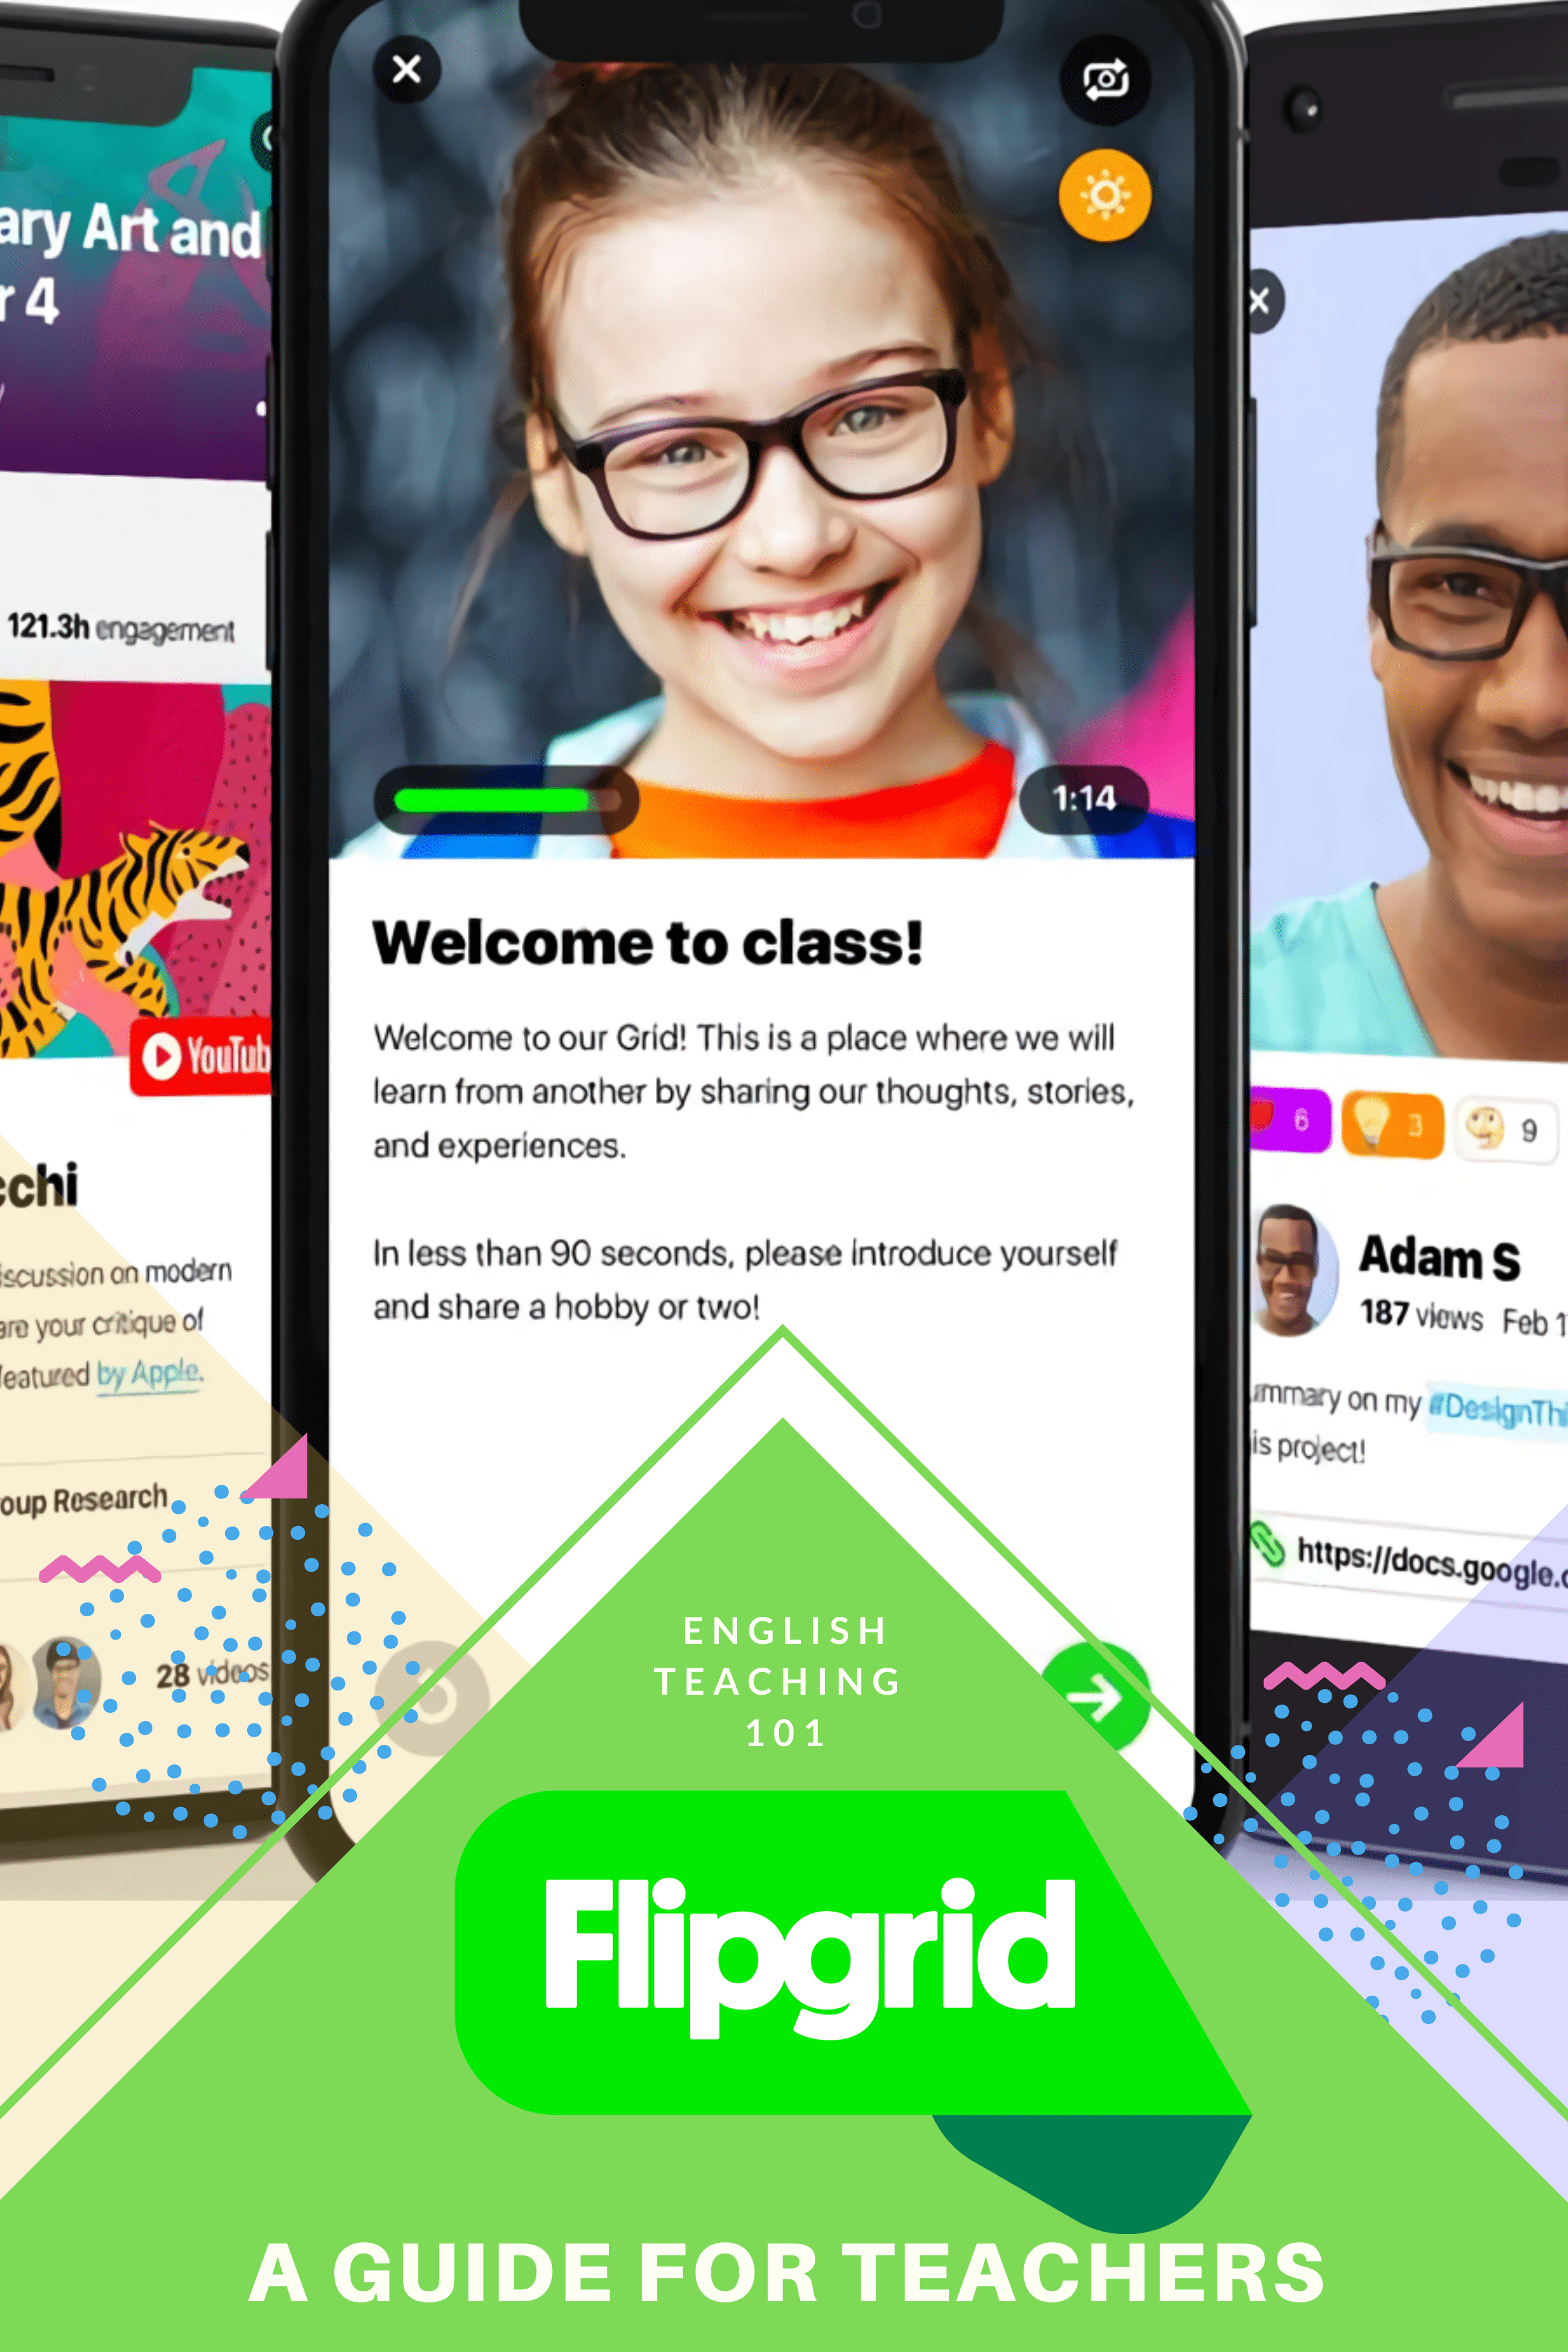 Sample activities you can do with FlipGrid!